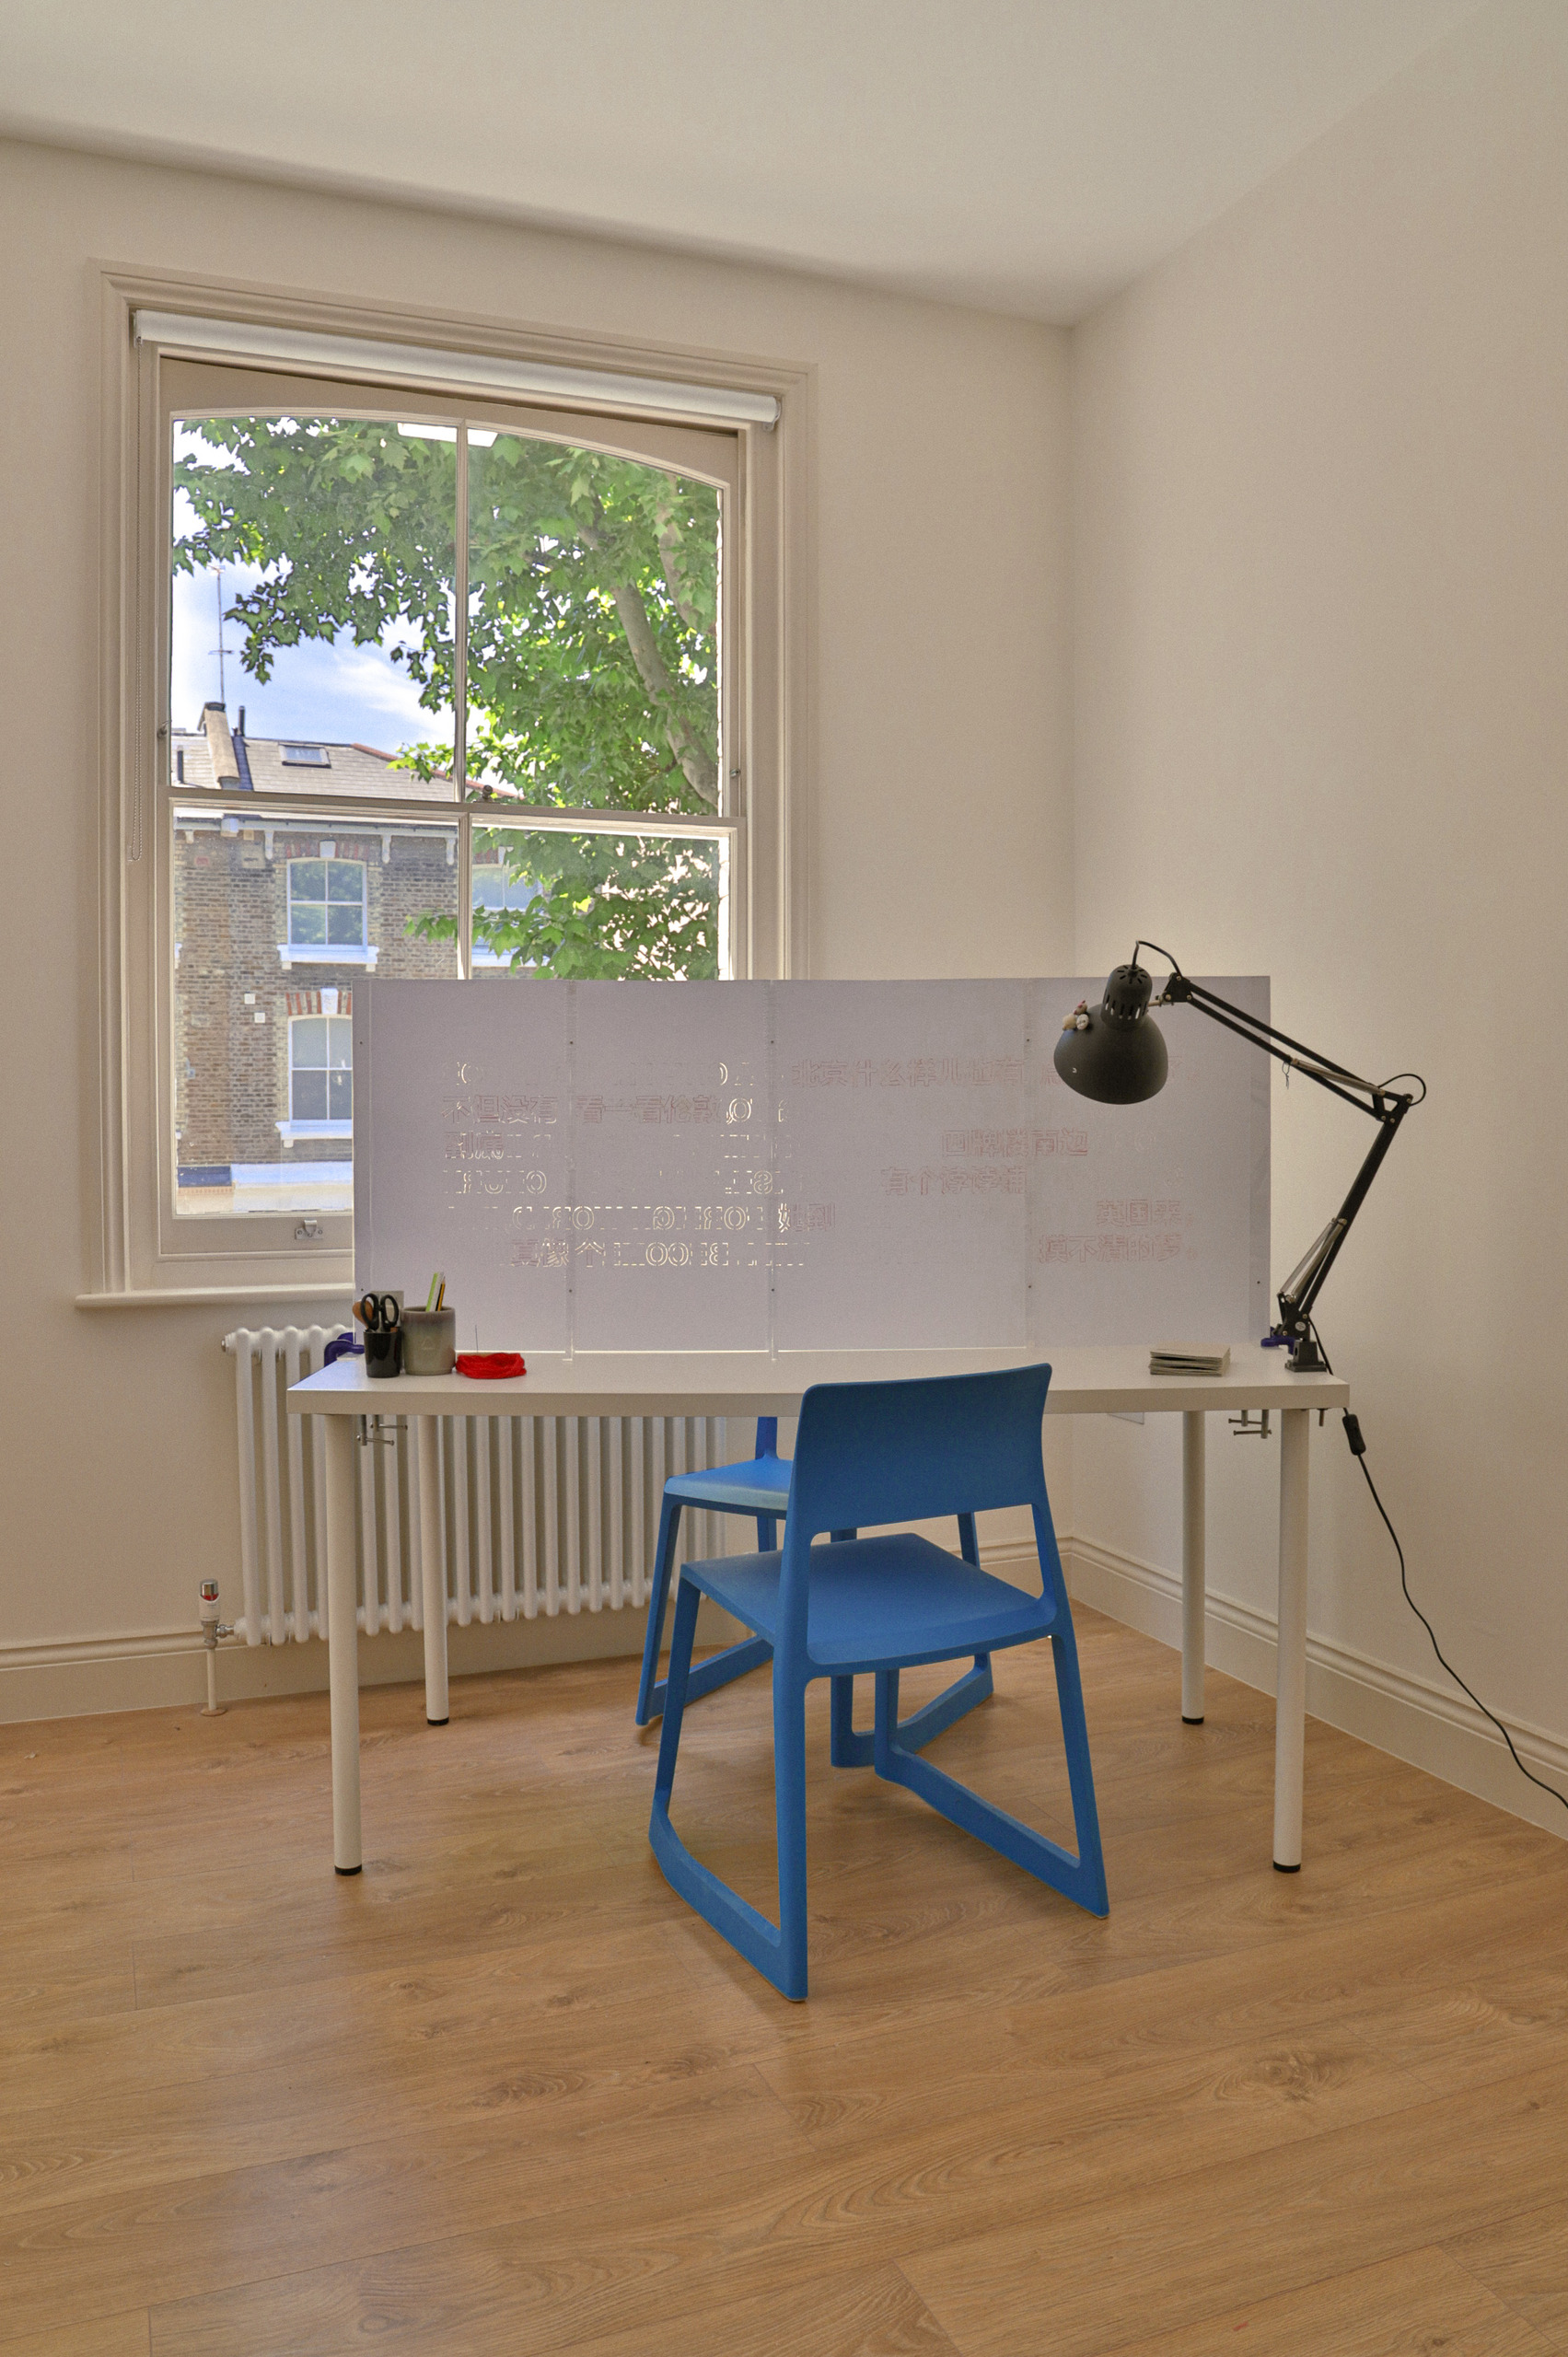 150cm desk, sewing template